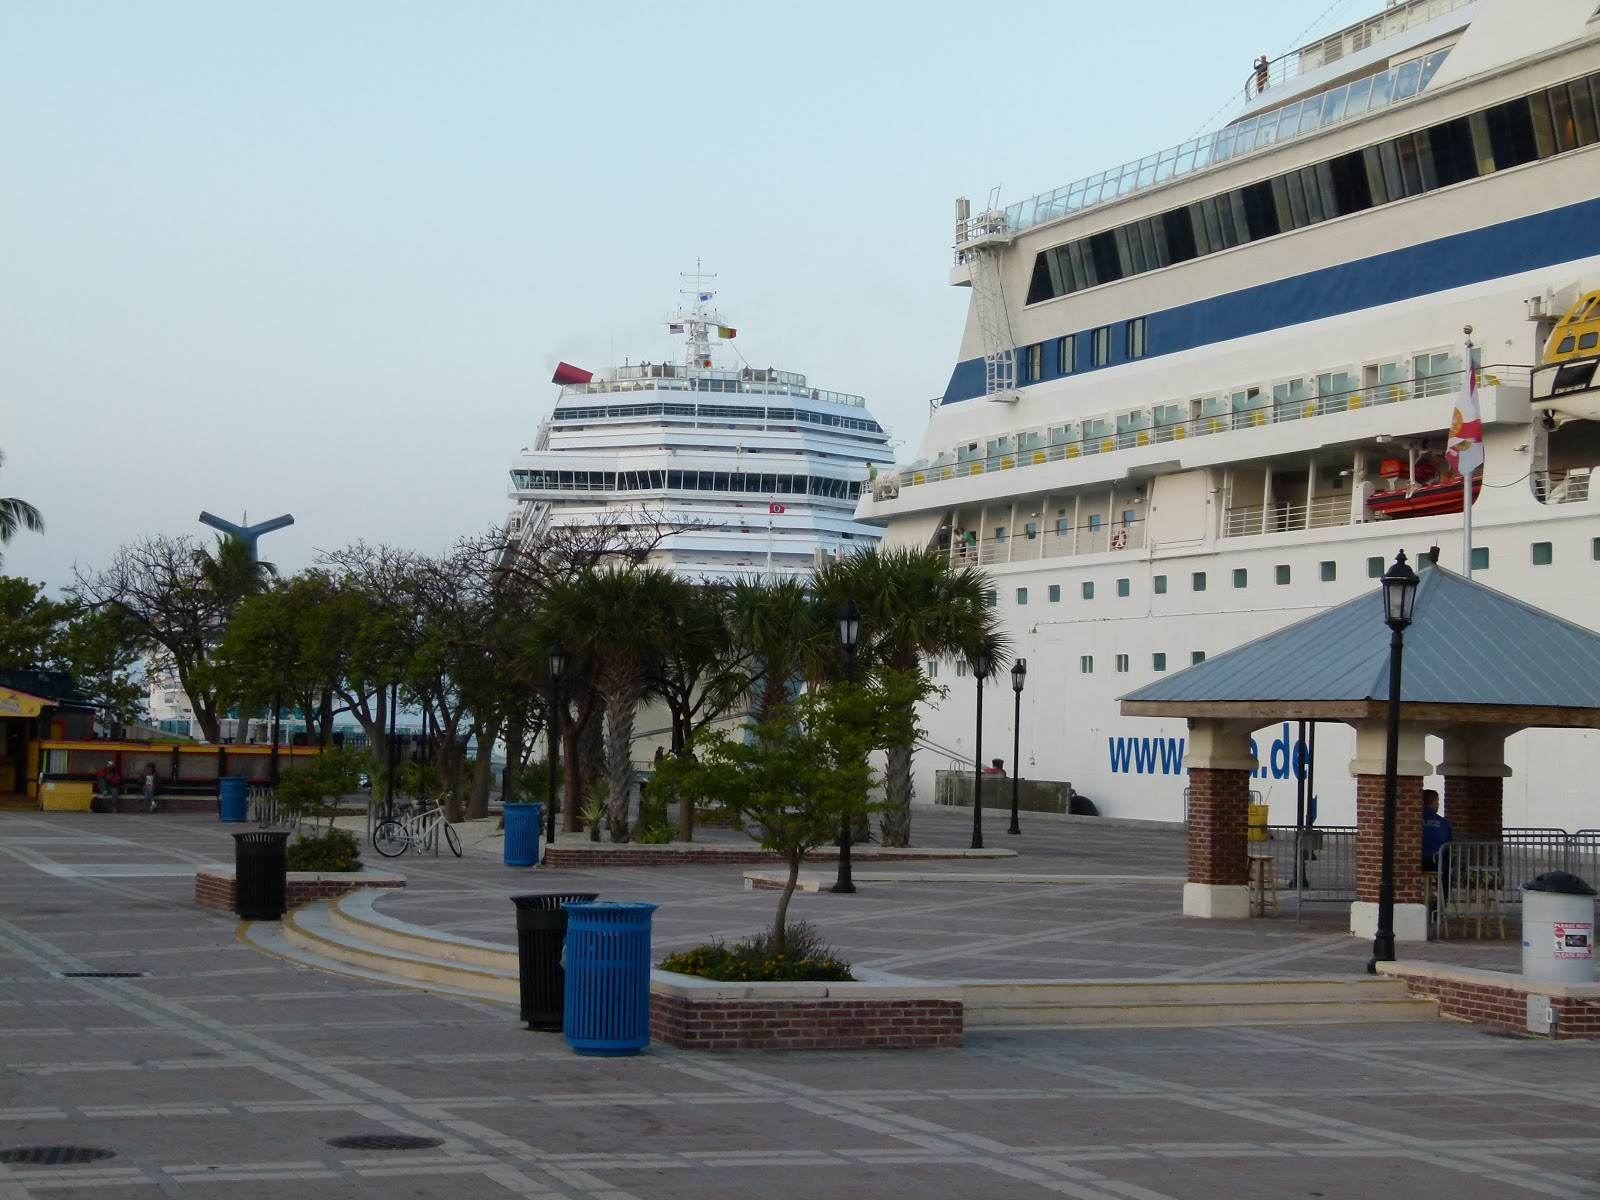 Key West Vacation And Visit Guide A THREE Cruise Ship Day In Key West - Cruise ship key west